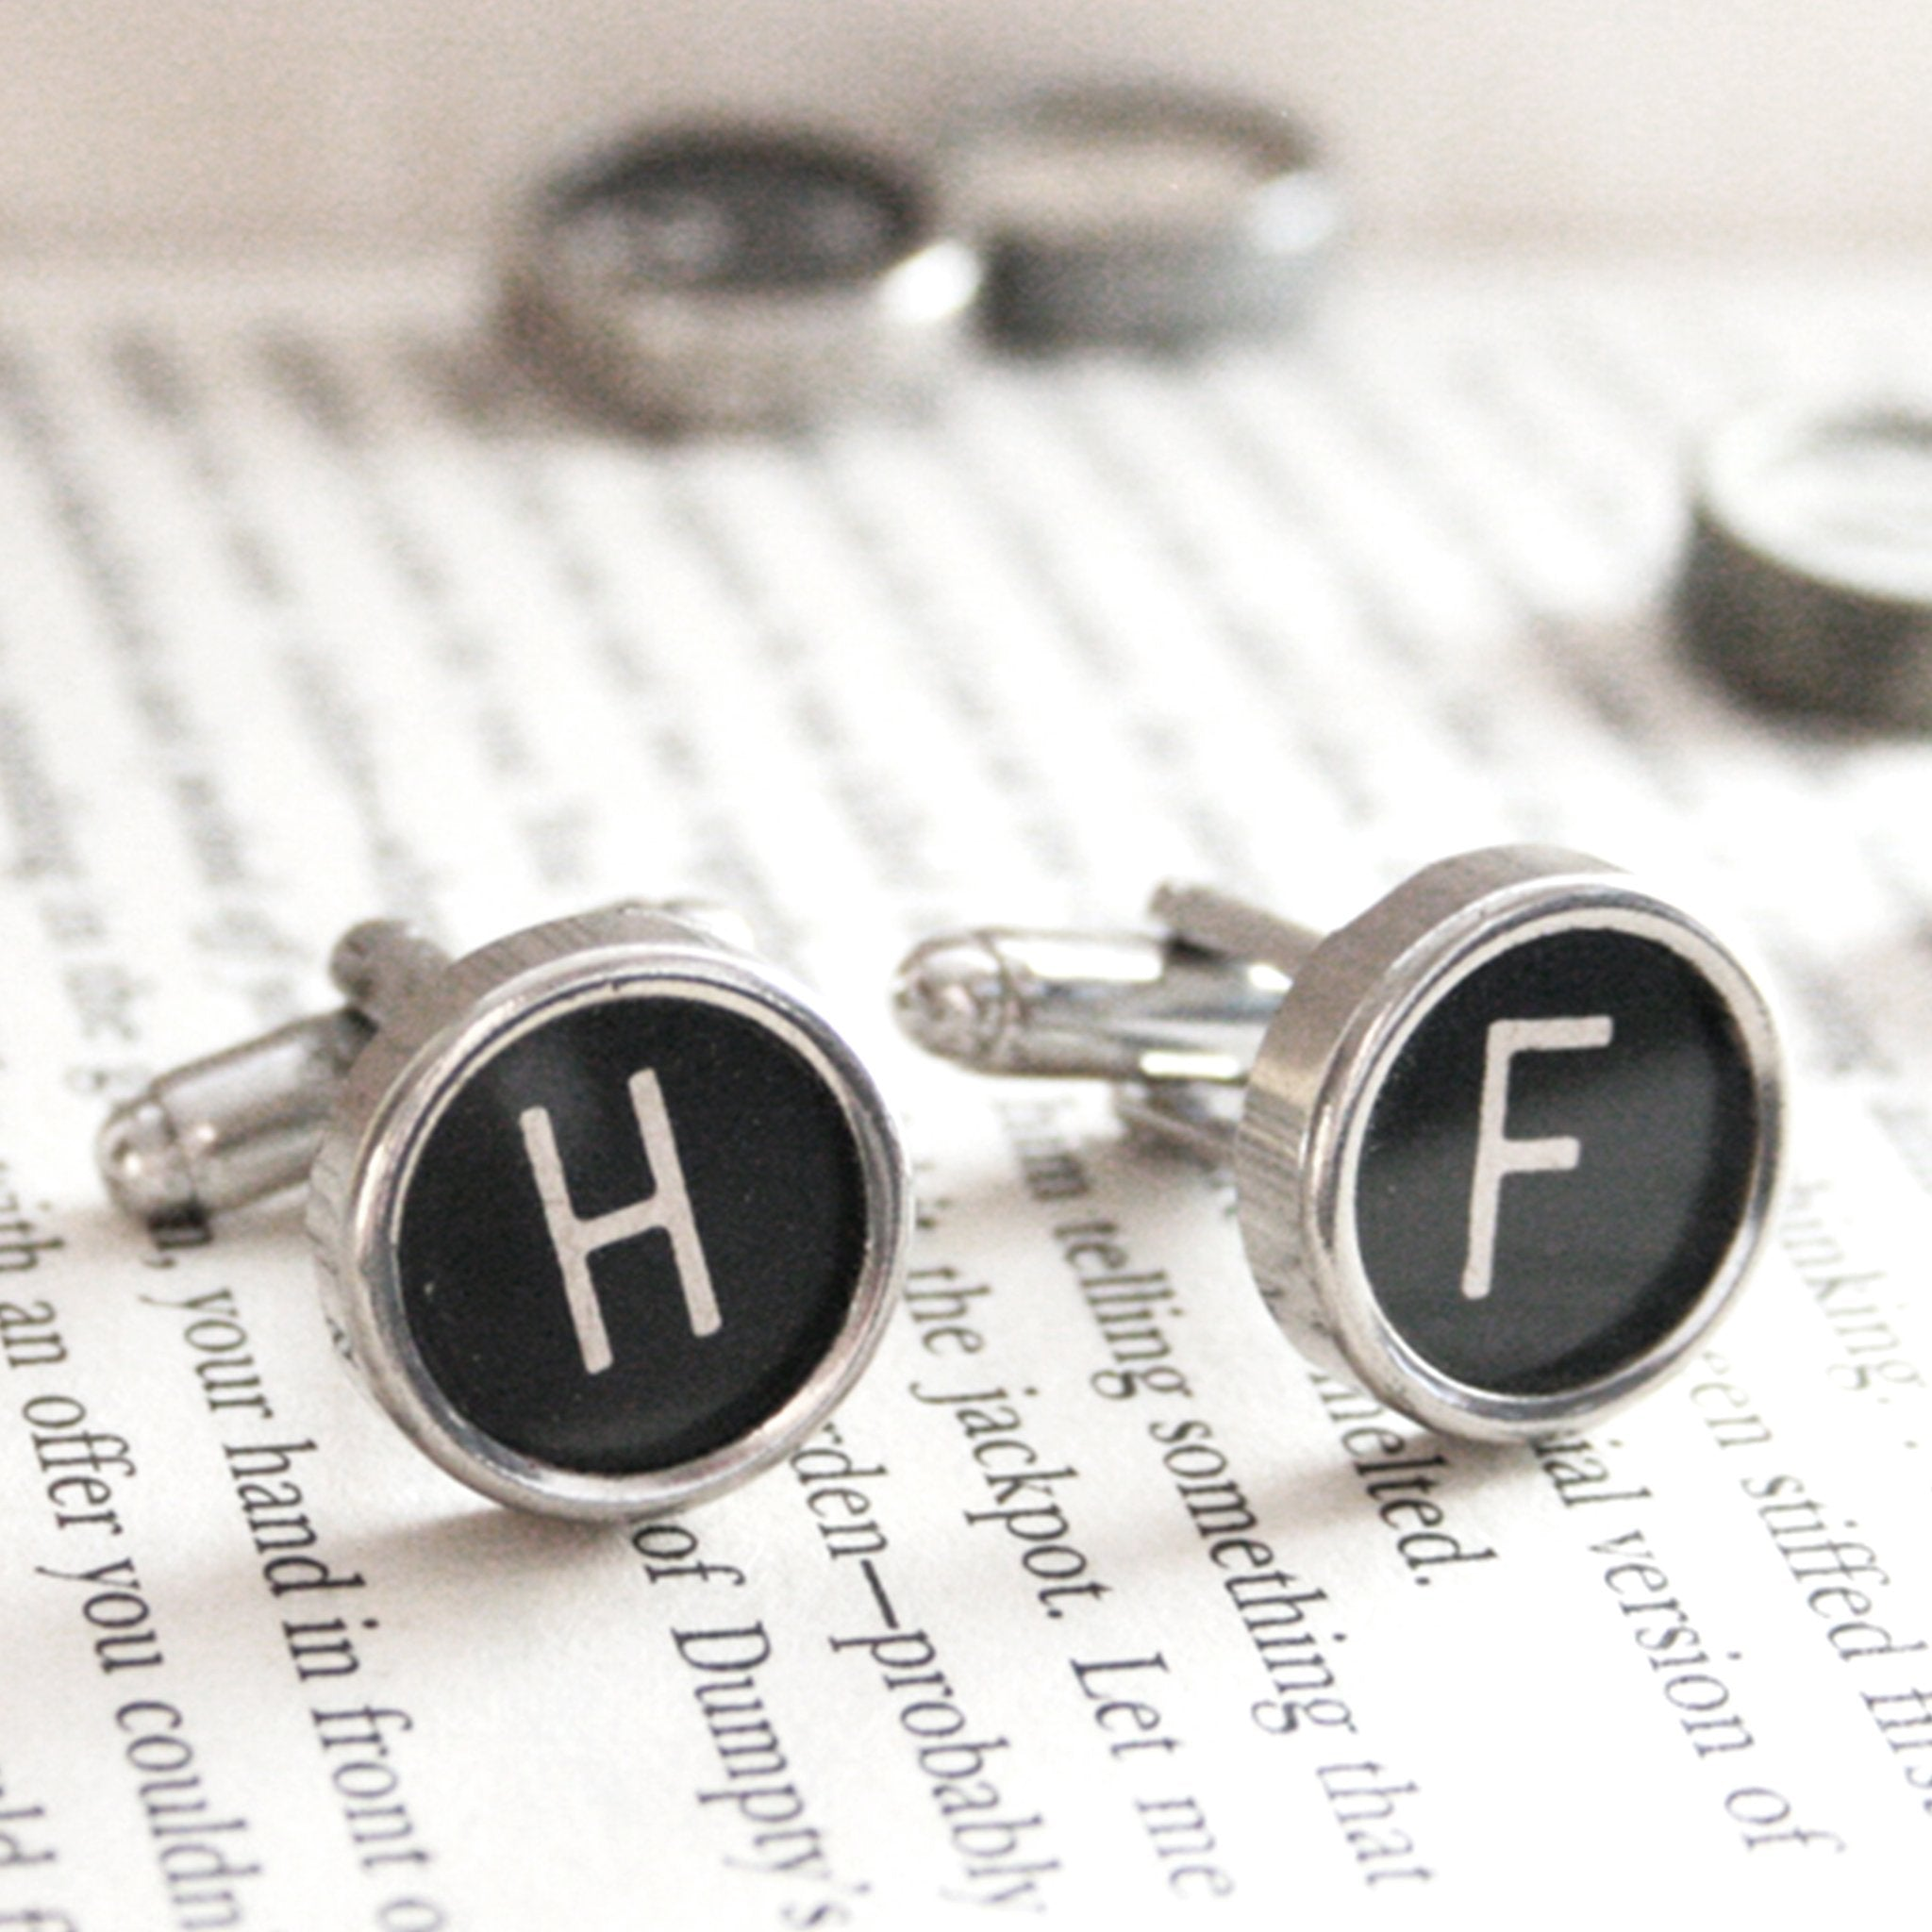 Initial Cufflinks of Typerwriter Keys